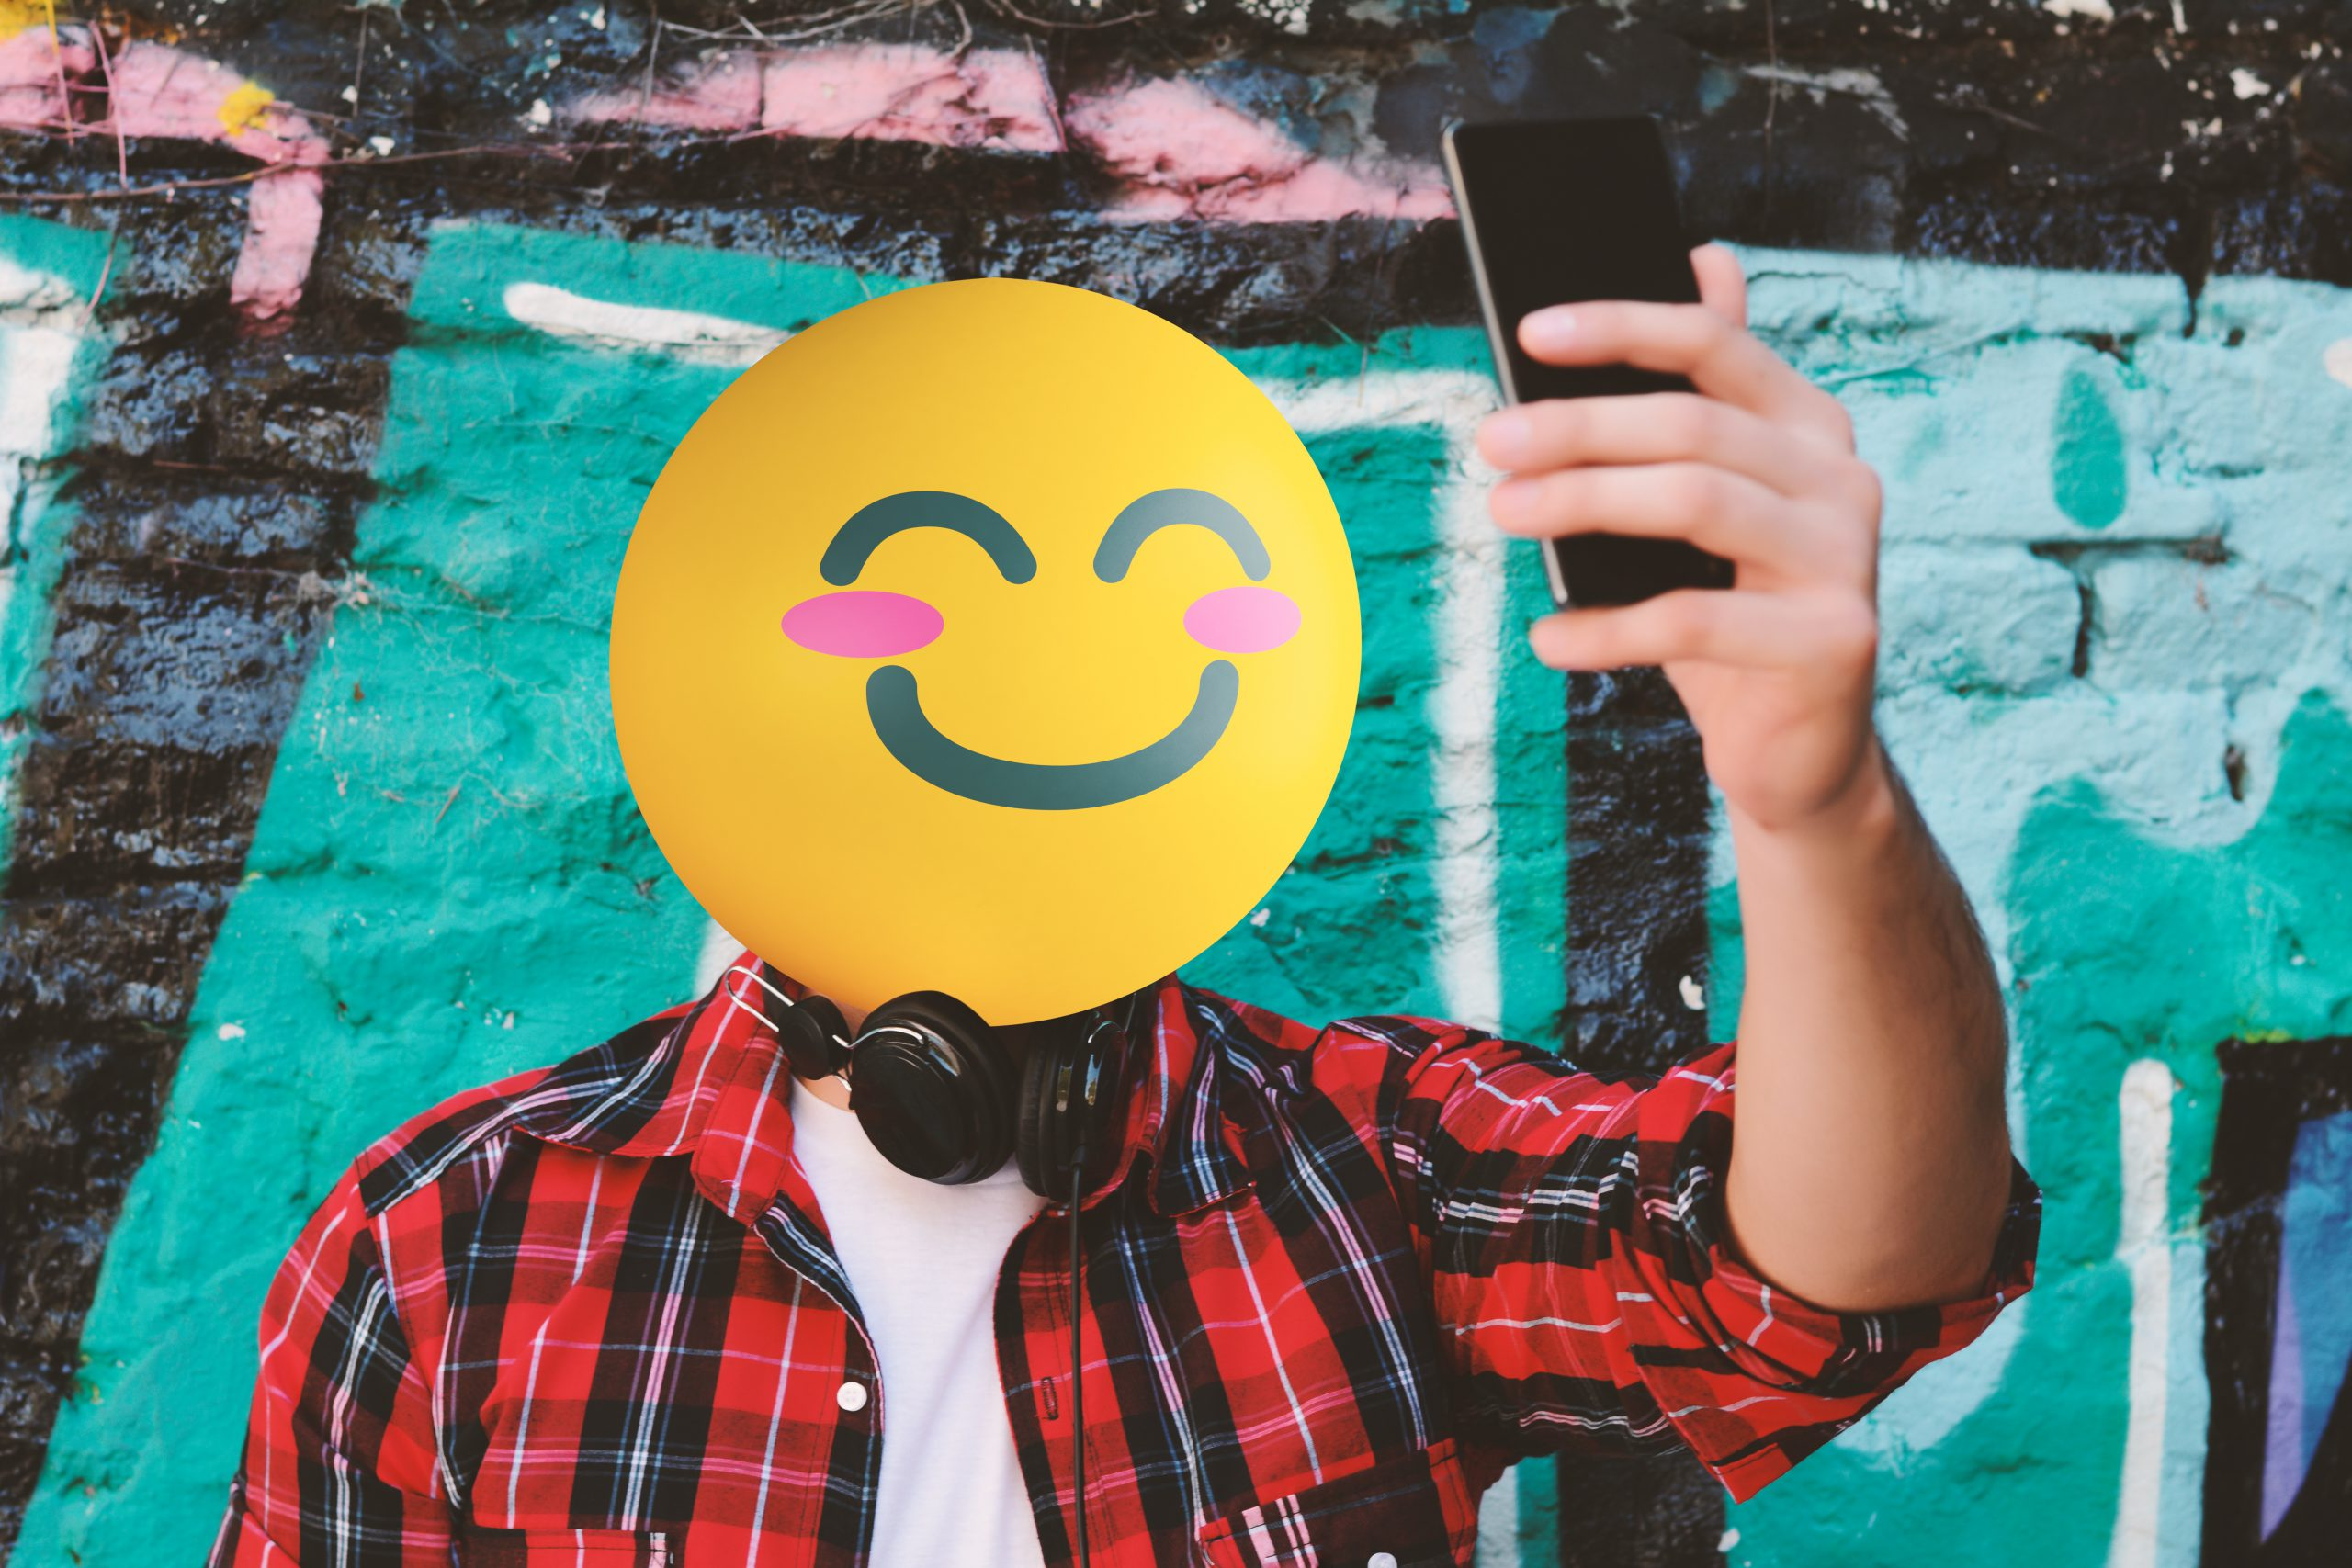 Emoji faced man taking a selfie